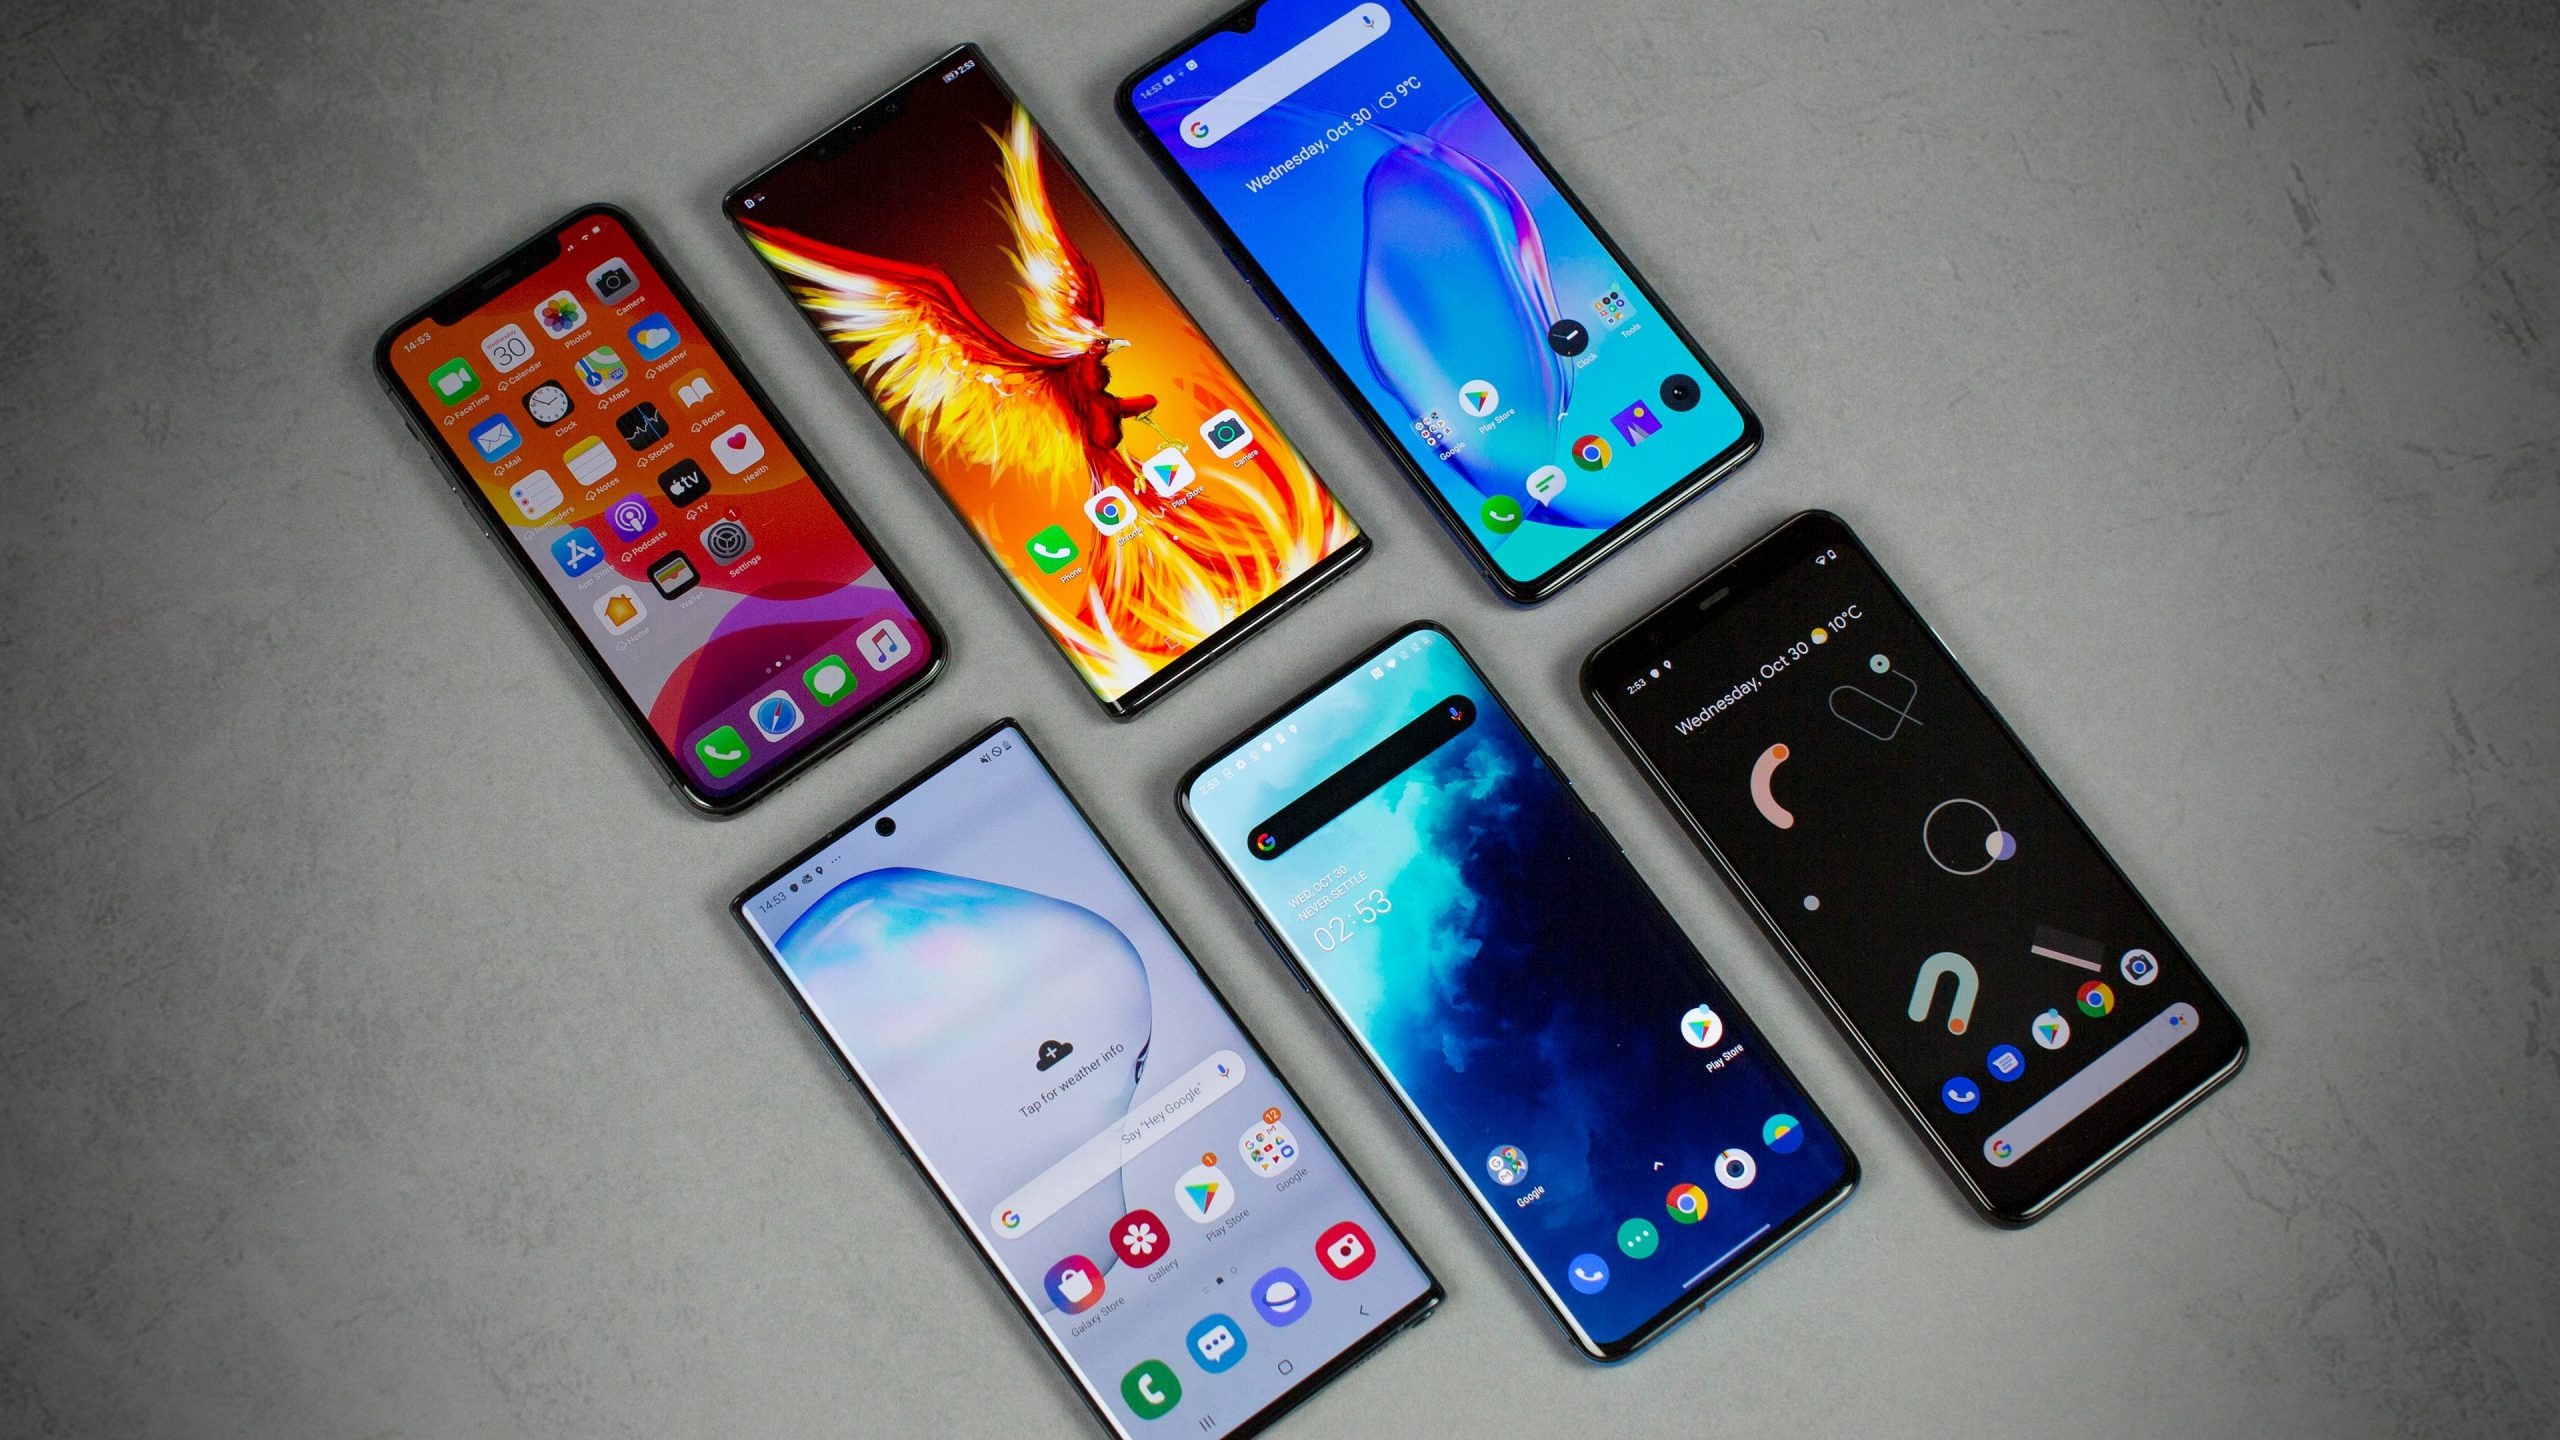 Cheap Android Phones: Price and Specification